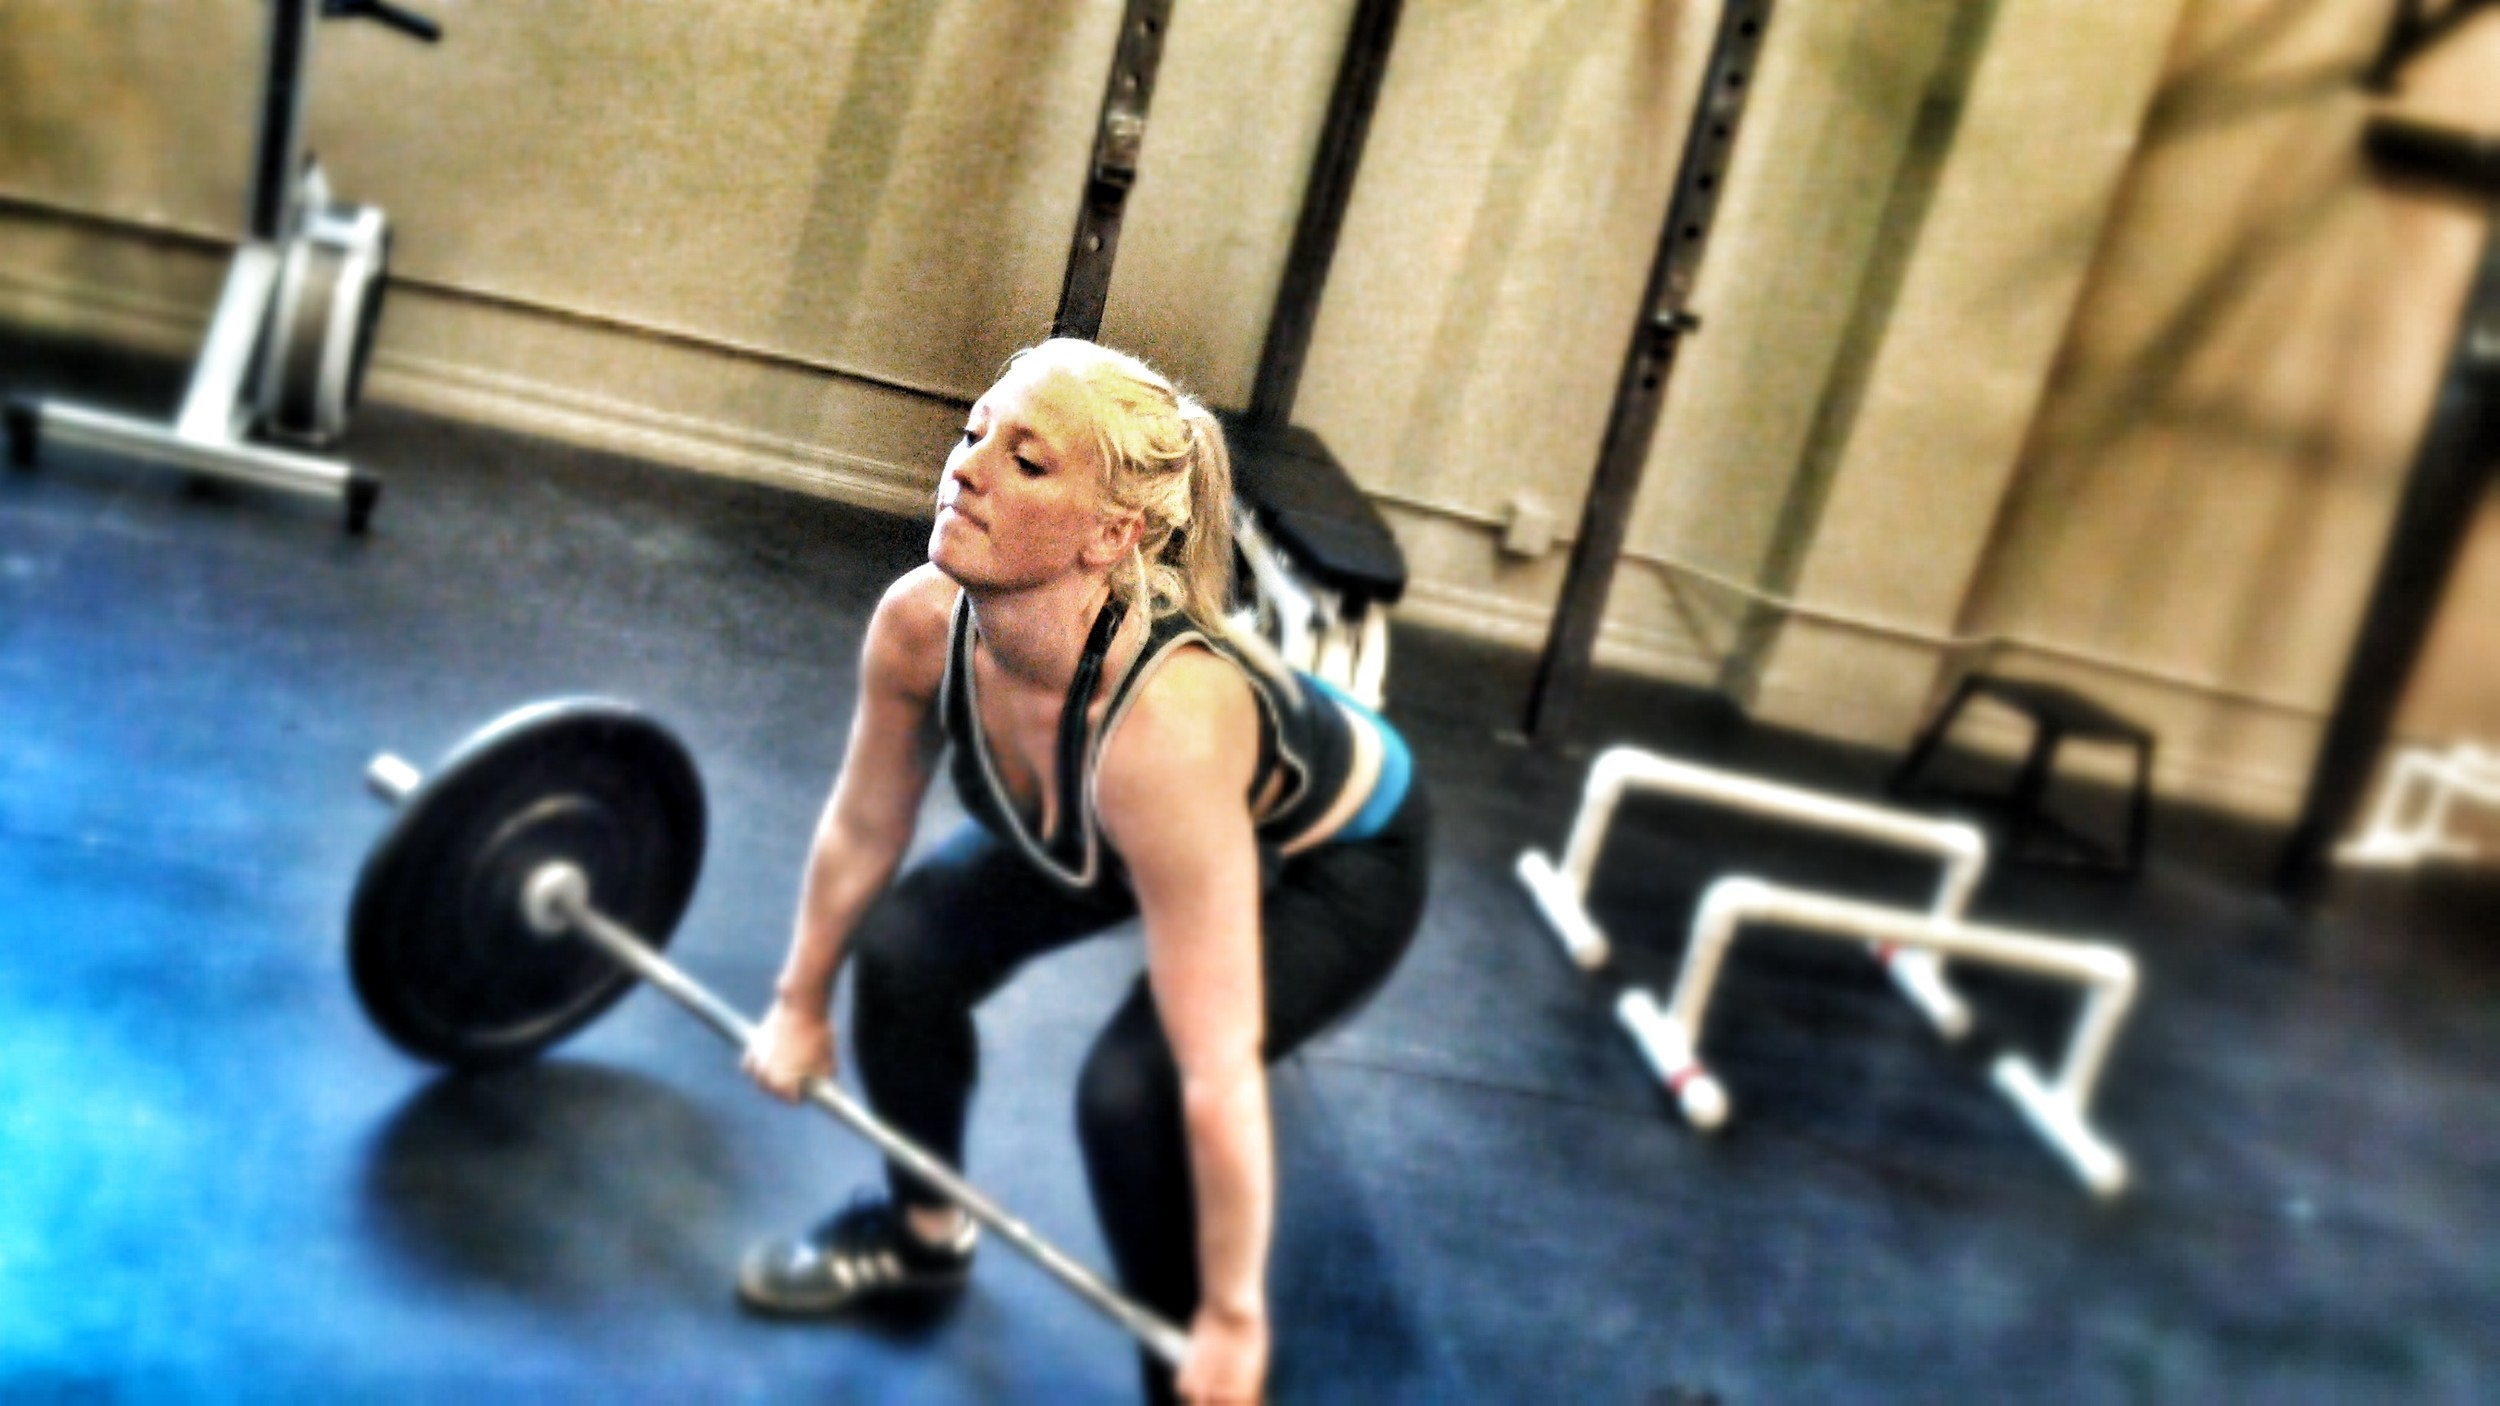 Nikki is learning and applying the basic movements as a new CrossFitter working as a Registered Nurse.